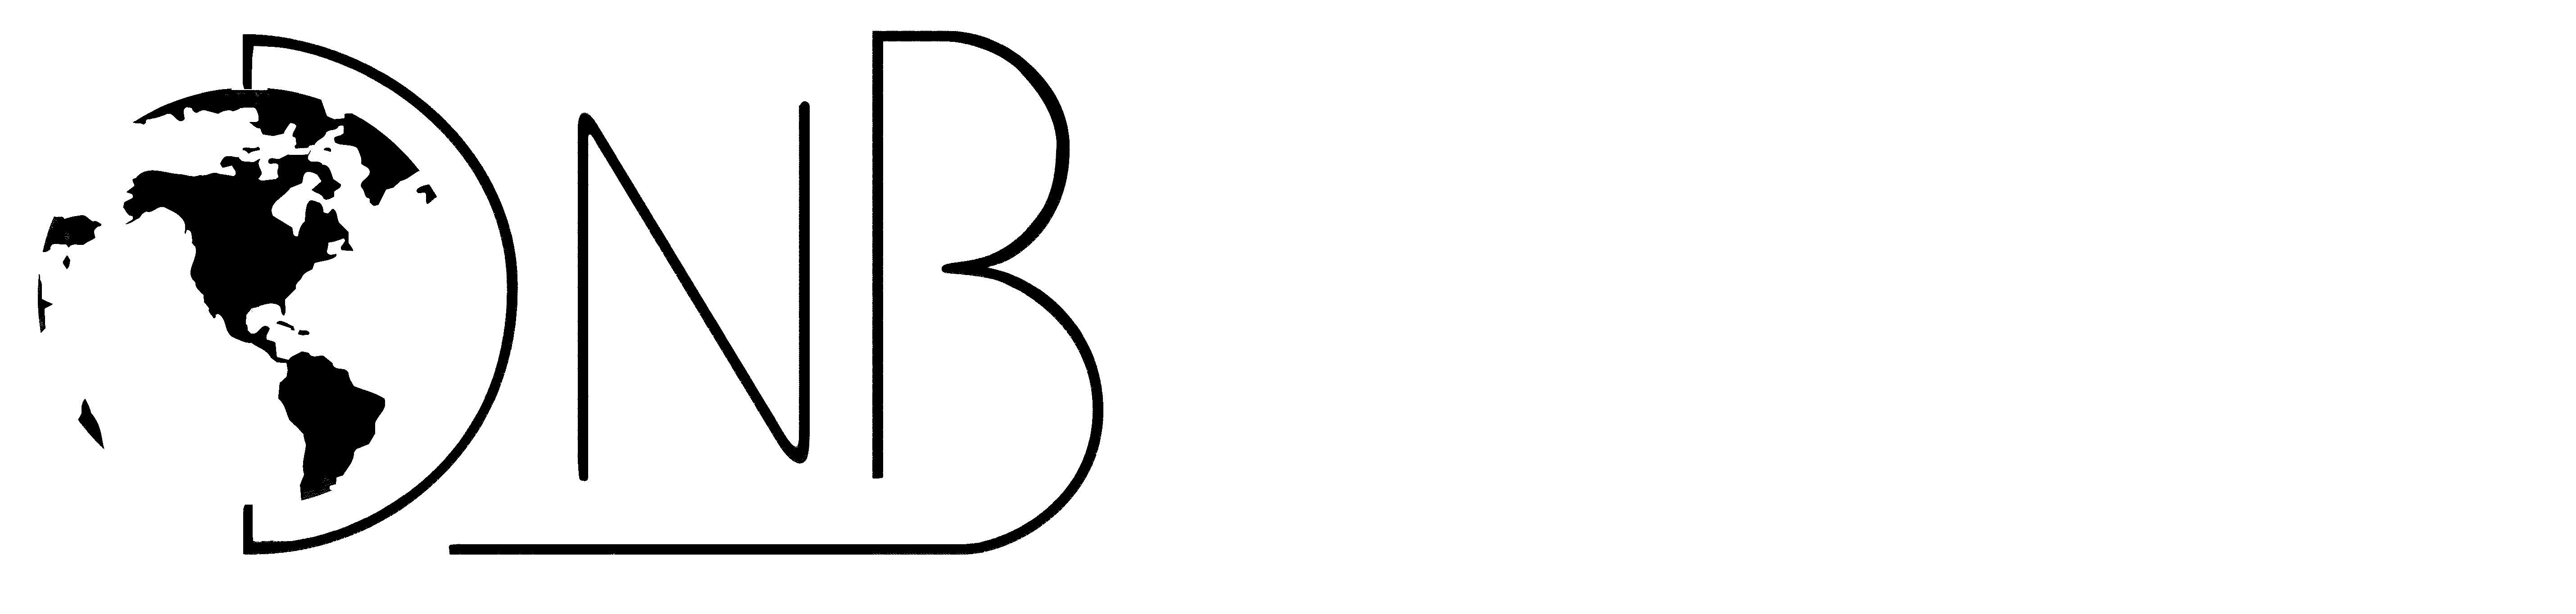 DNB Engineering, Inc